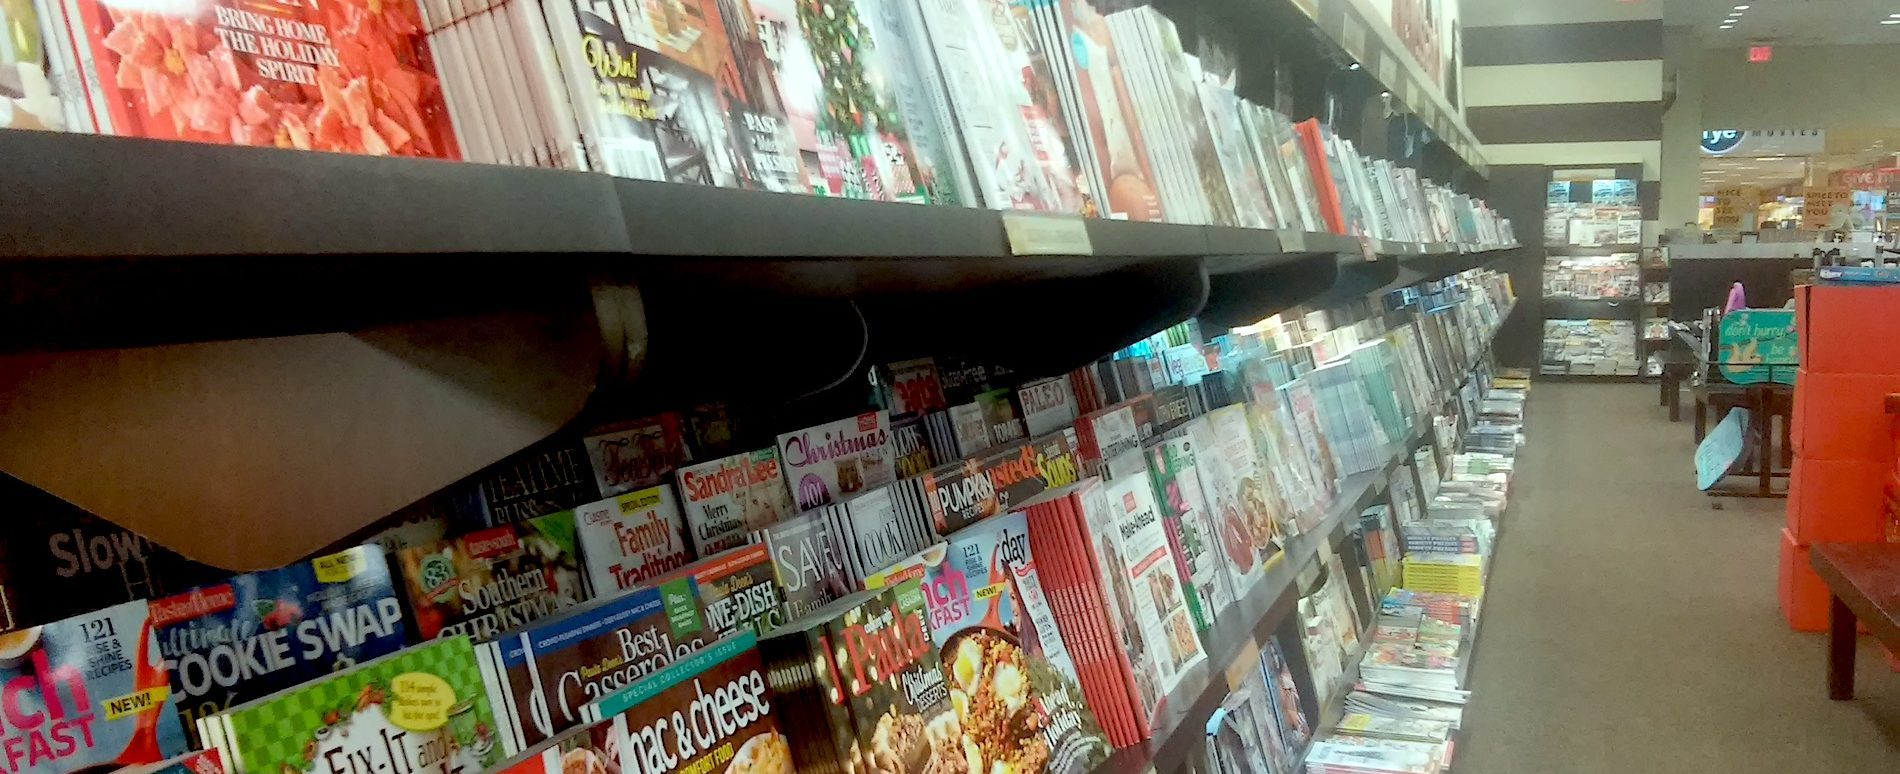 Rack of Magazines | Carol J. Alexander